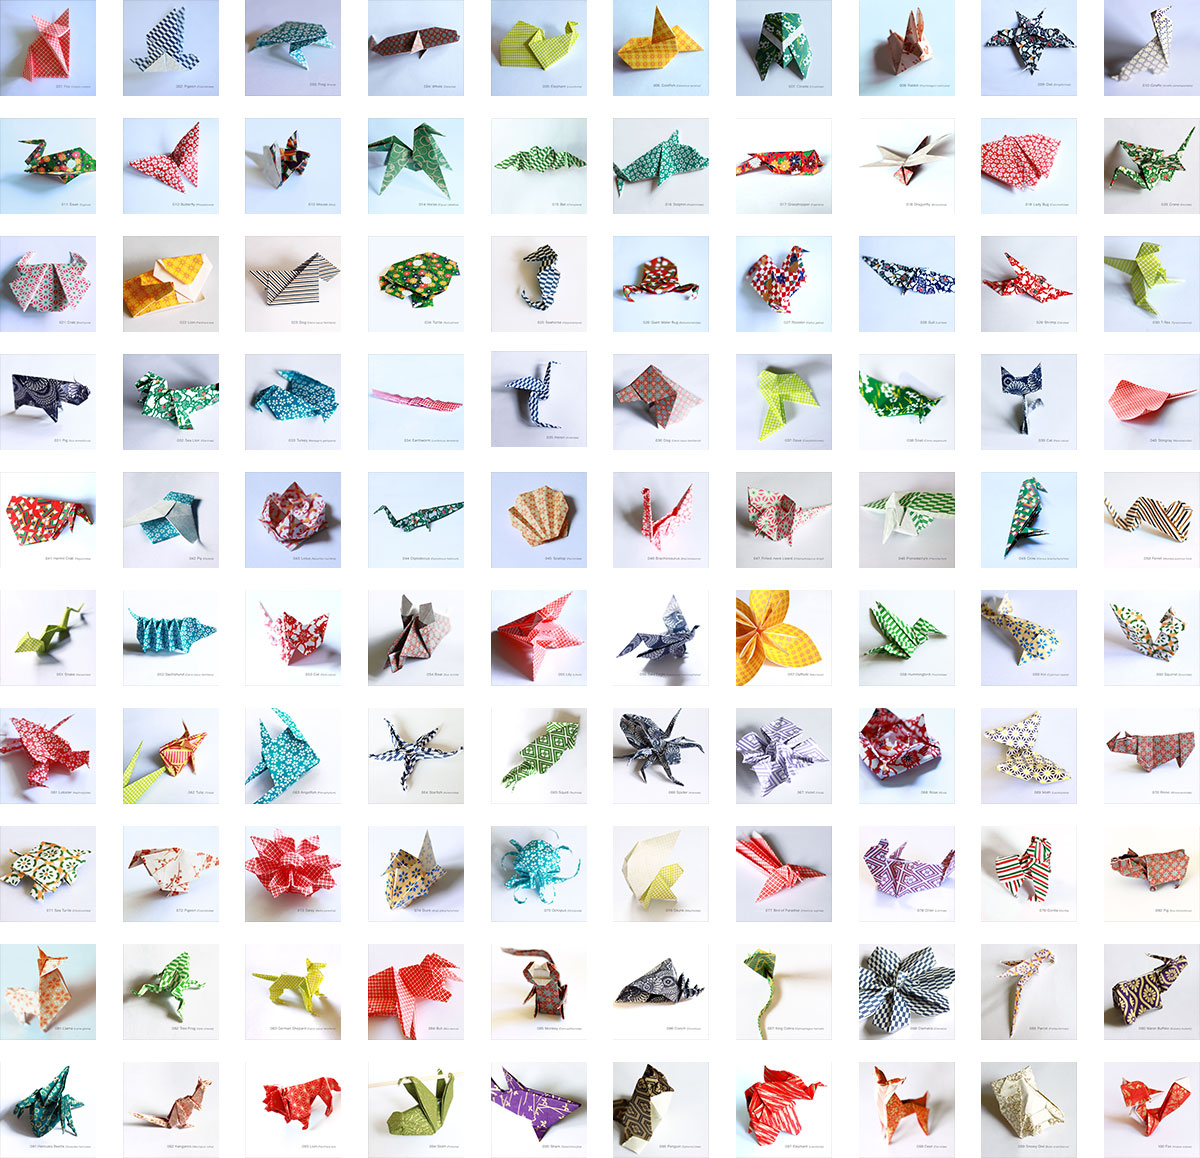 100 Days of Origami Specimens by Jessica Shiner